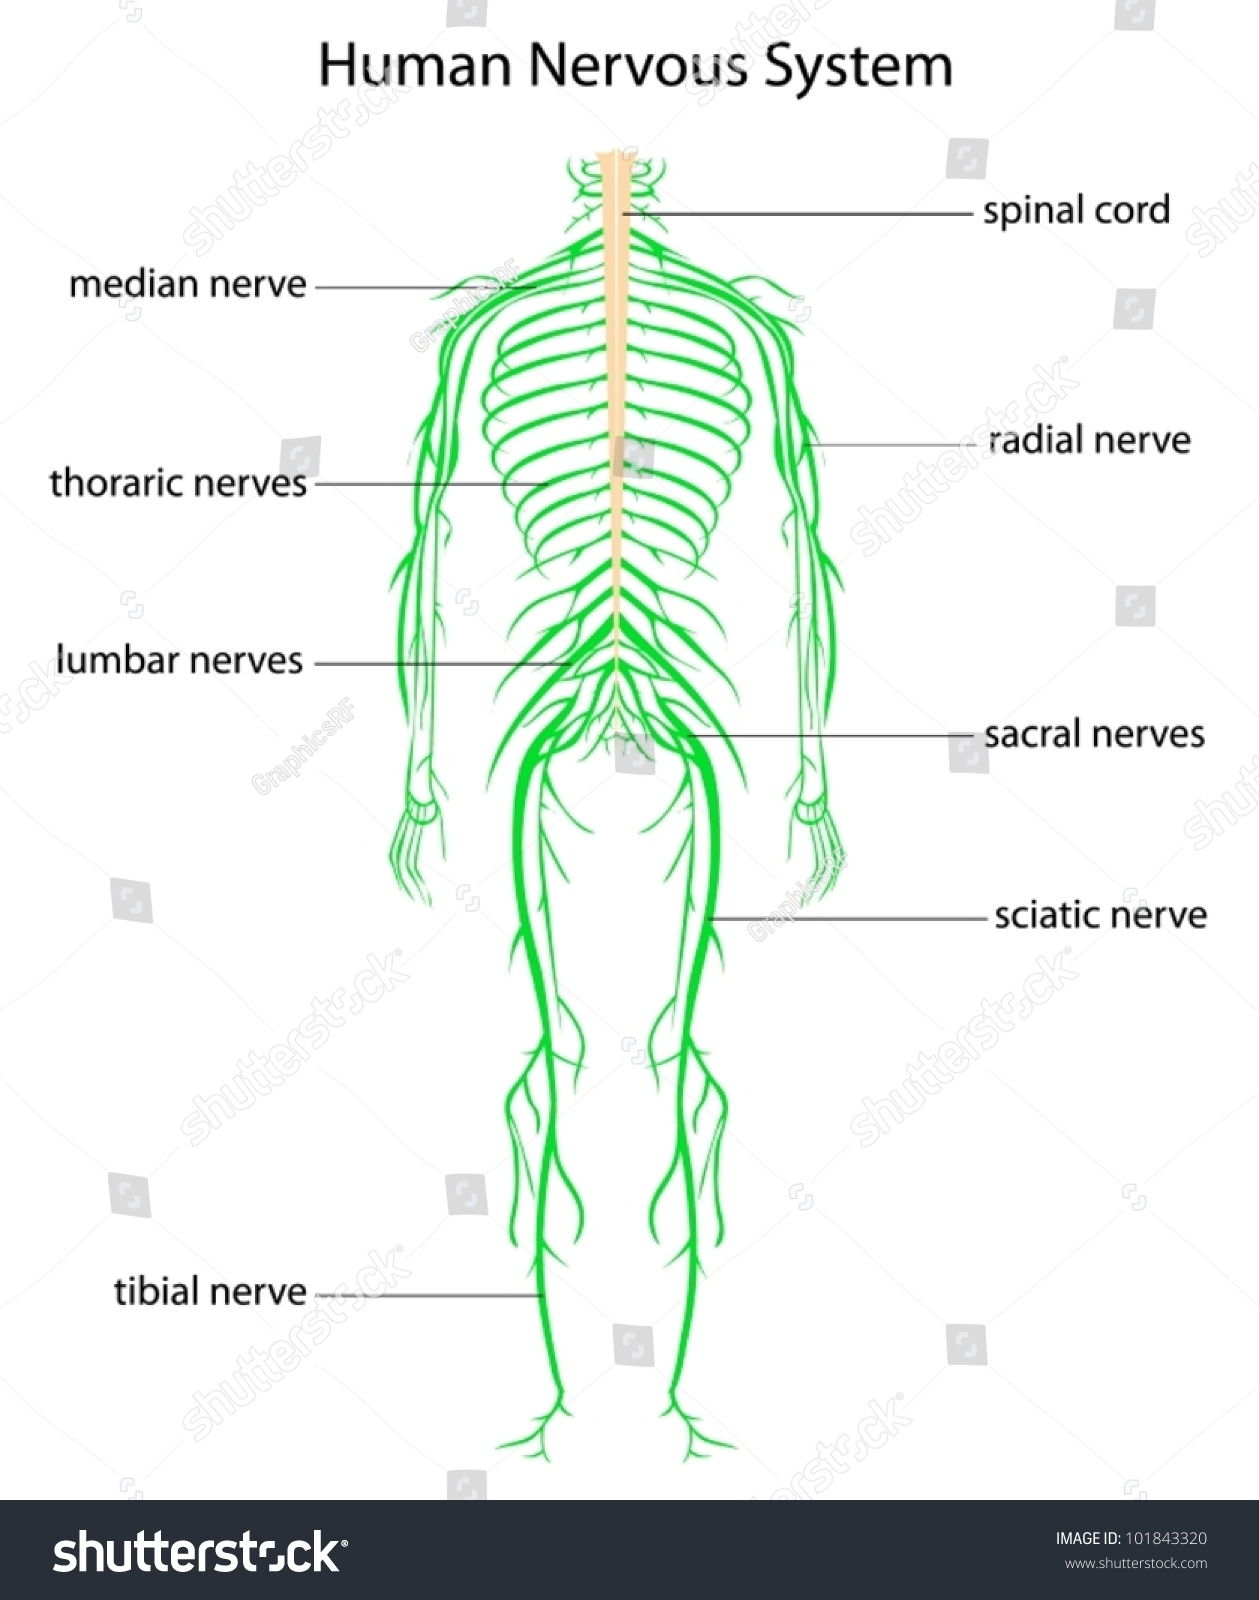 Illustration Human Nervous System Labels Stock VectorNervous System Diagram Labeled And Unlabeled